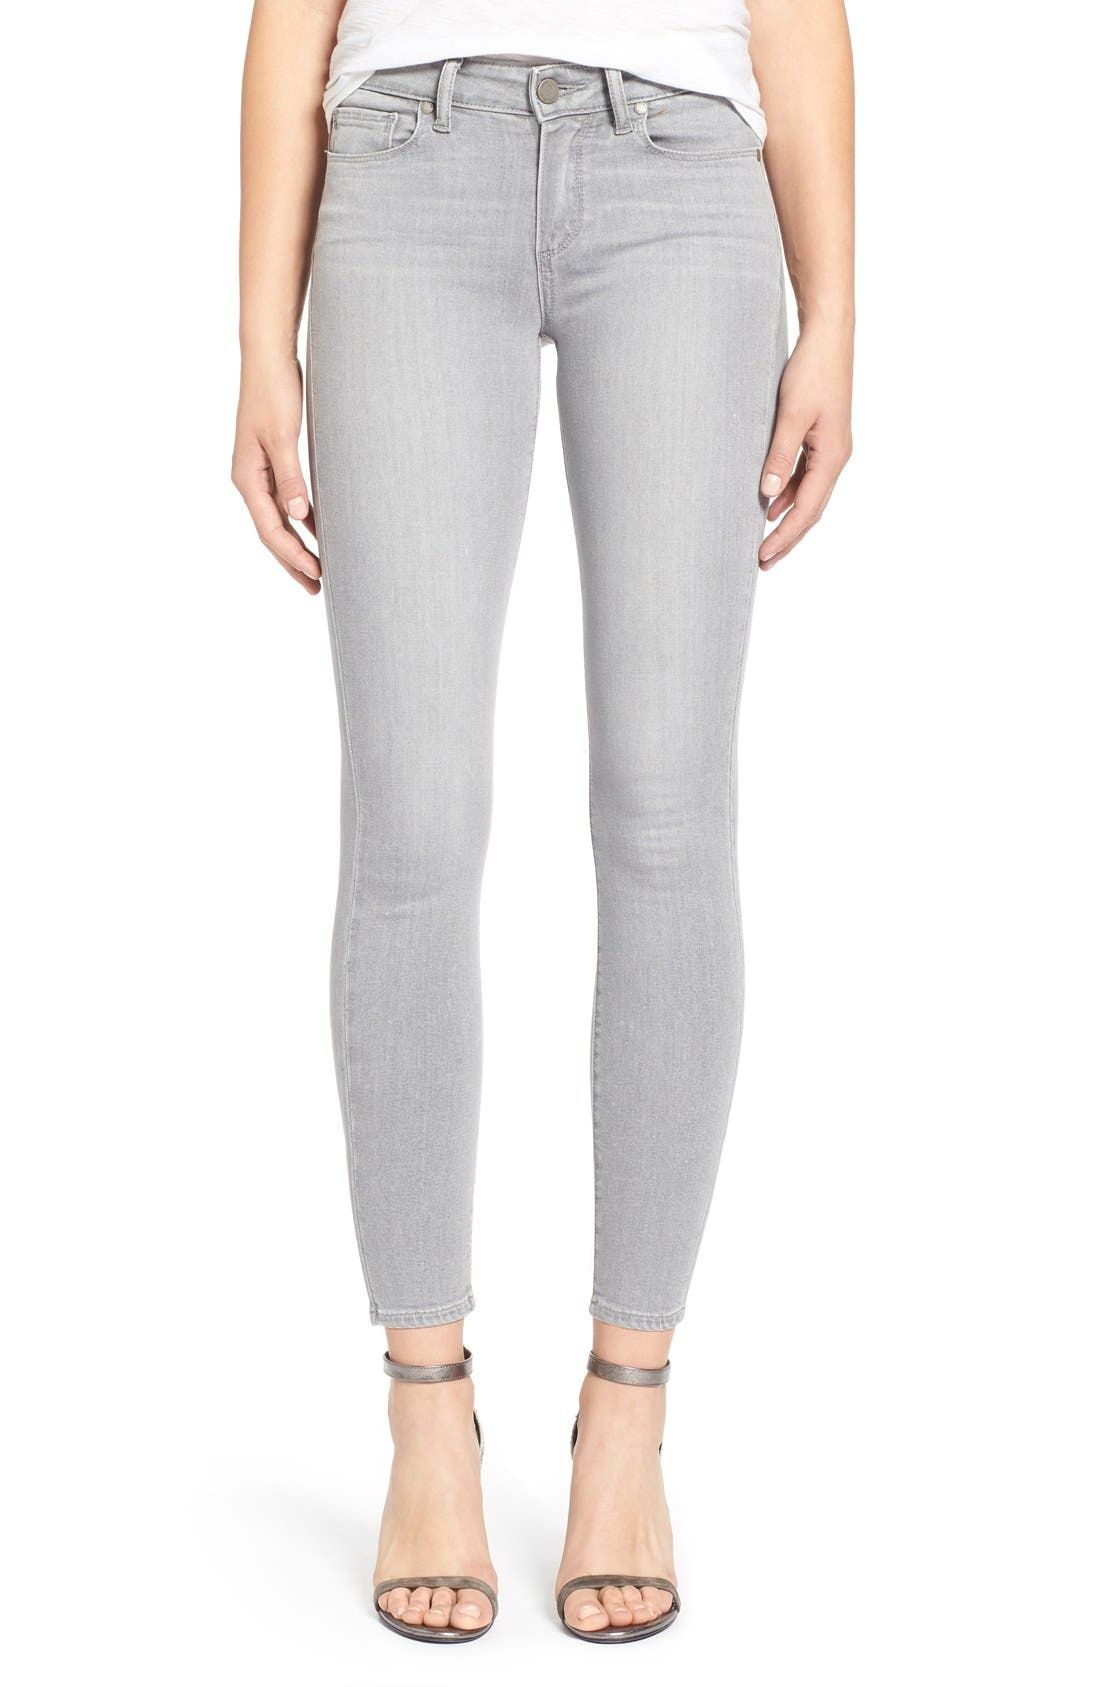 Alternate Image 1 Selected - Paige Denim 'Verdugo' Ankle Skinny Jeans (Dove Grey)